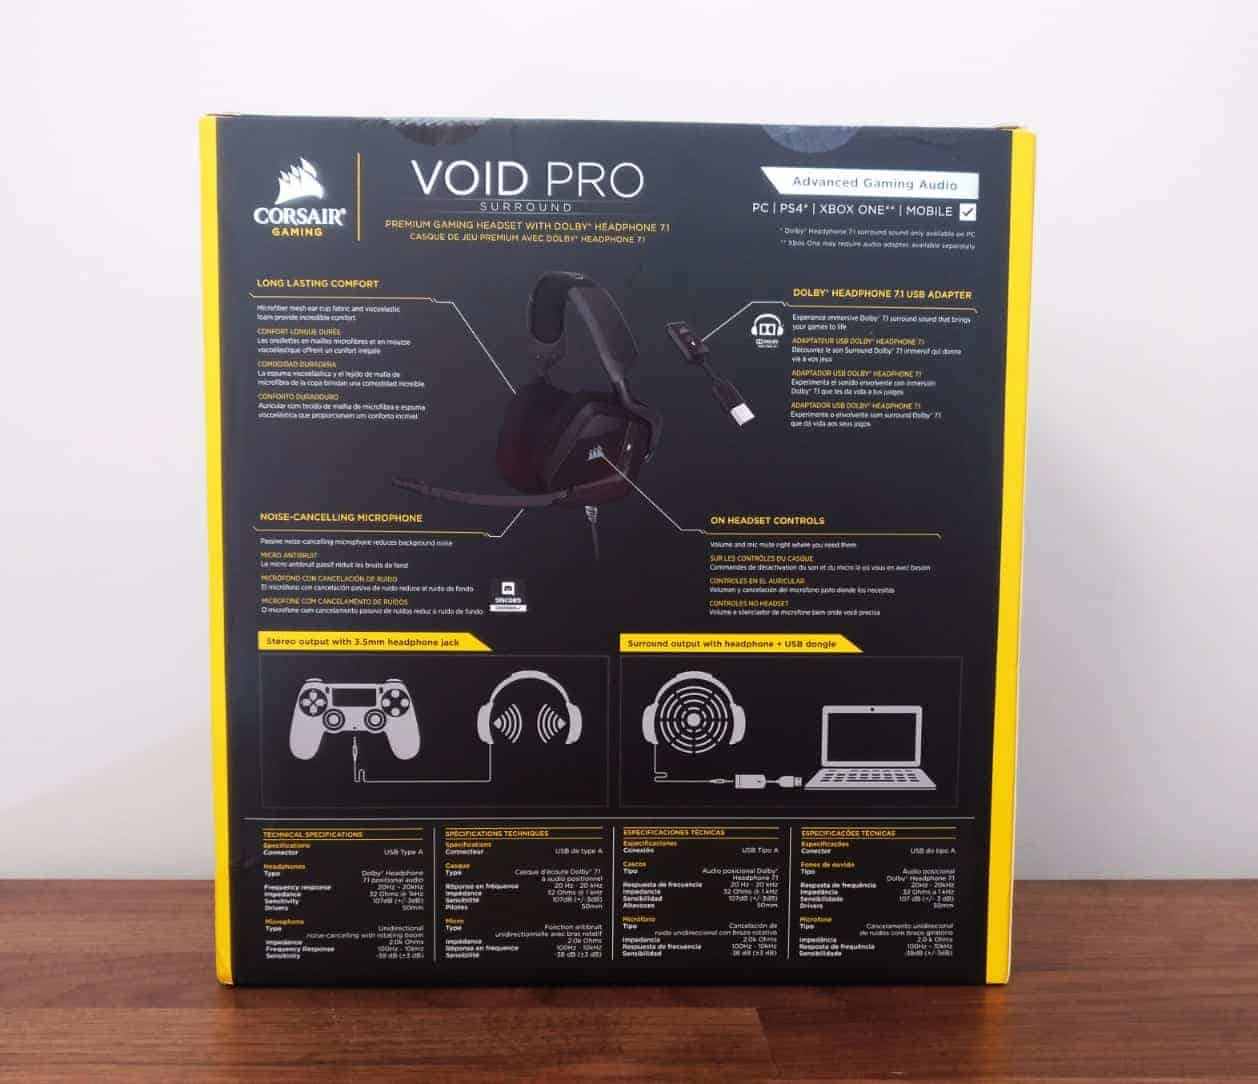 corsair-void-pro-photos-34 Corsair Void Pro Surround Gaming Headset Review